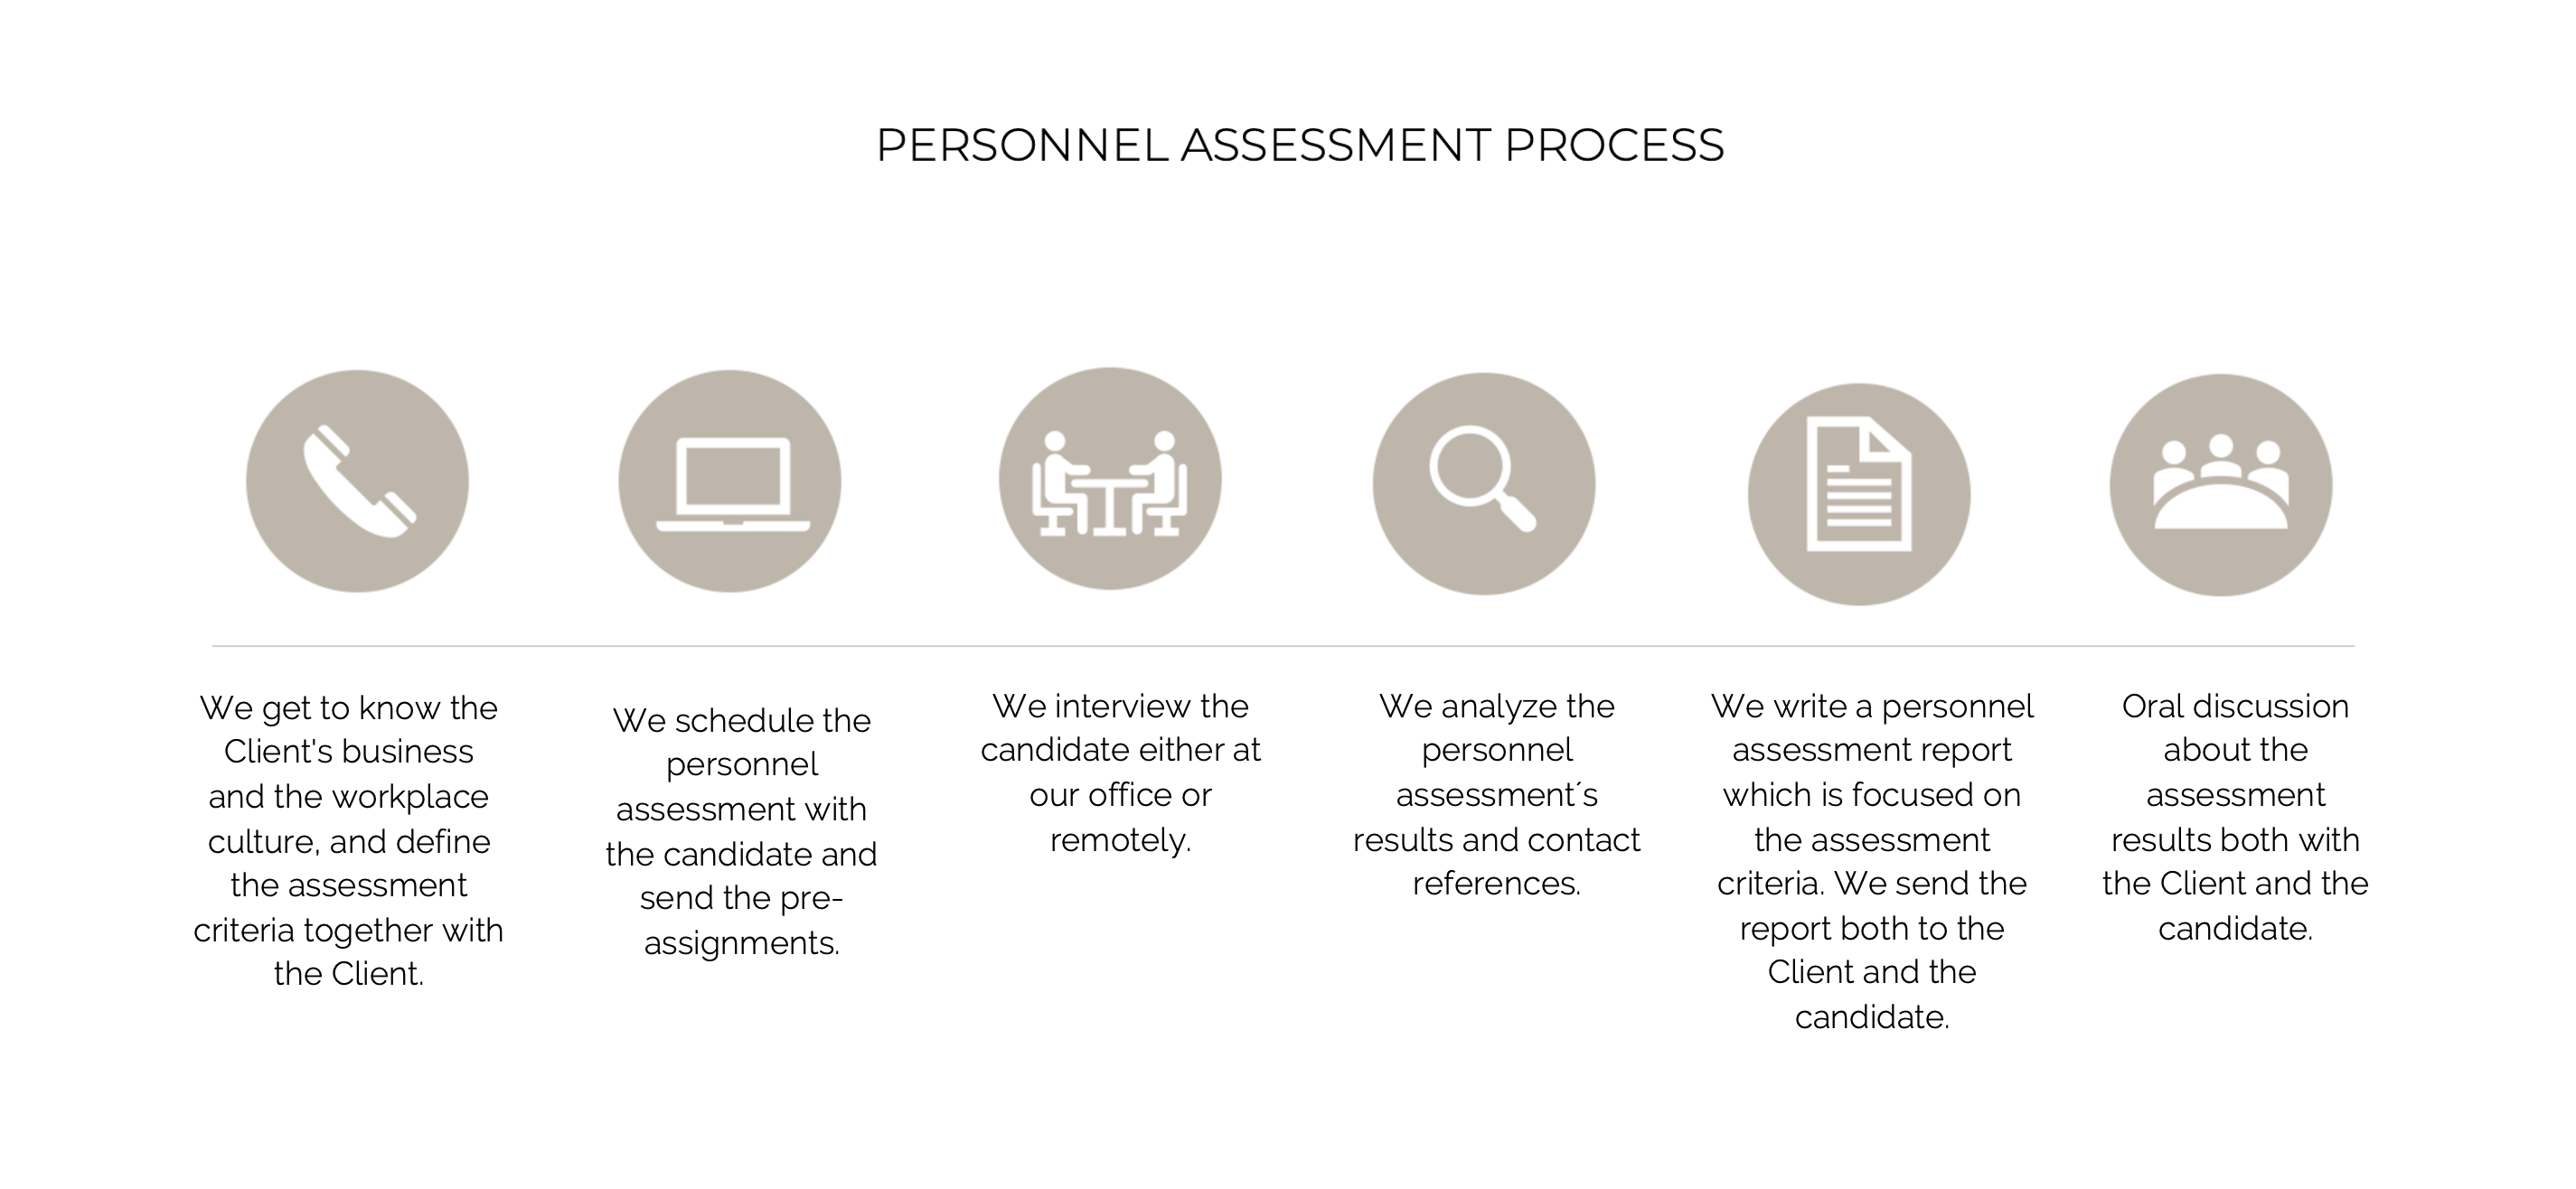 Personnel assessment process step by step.